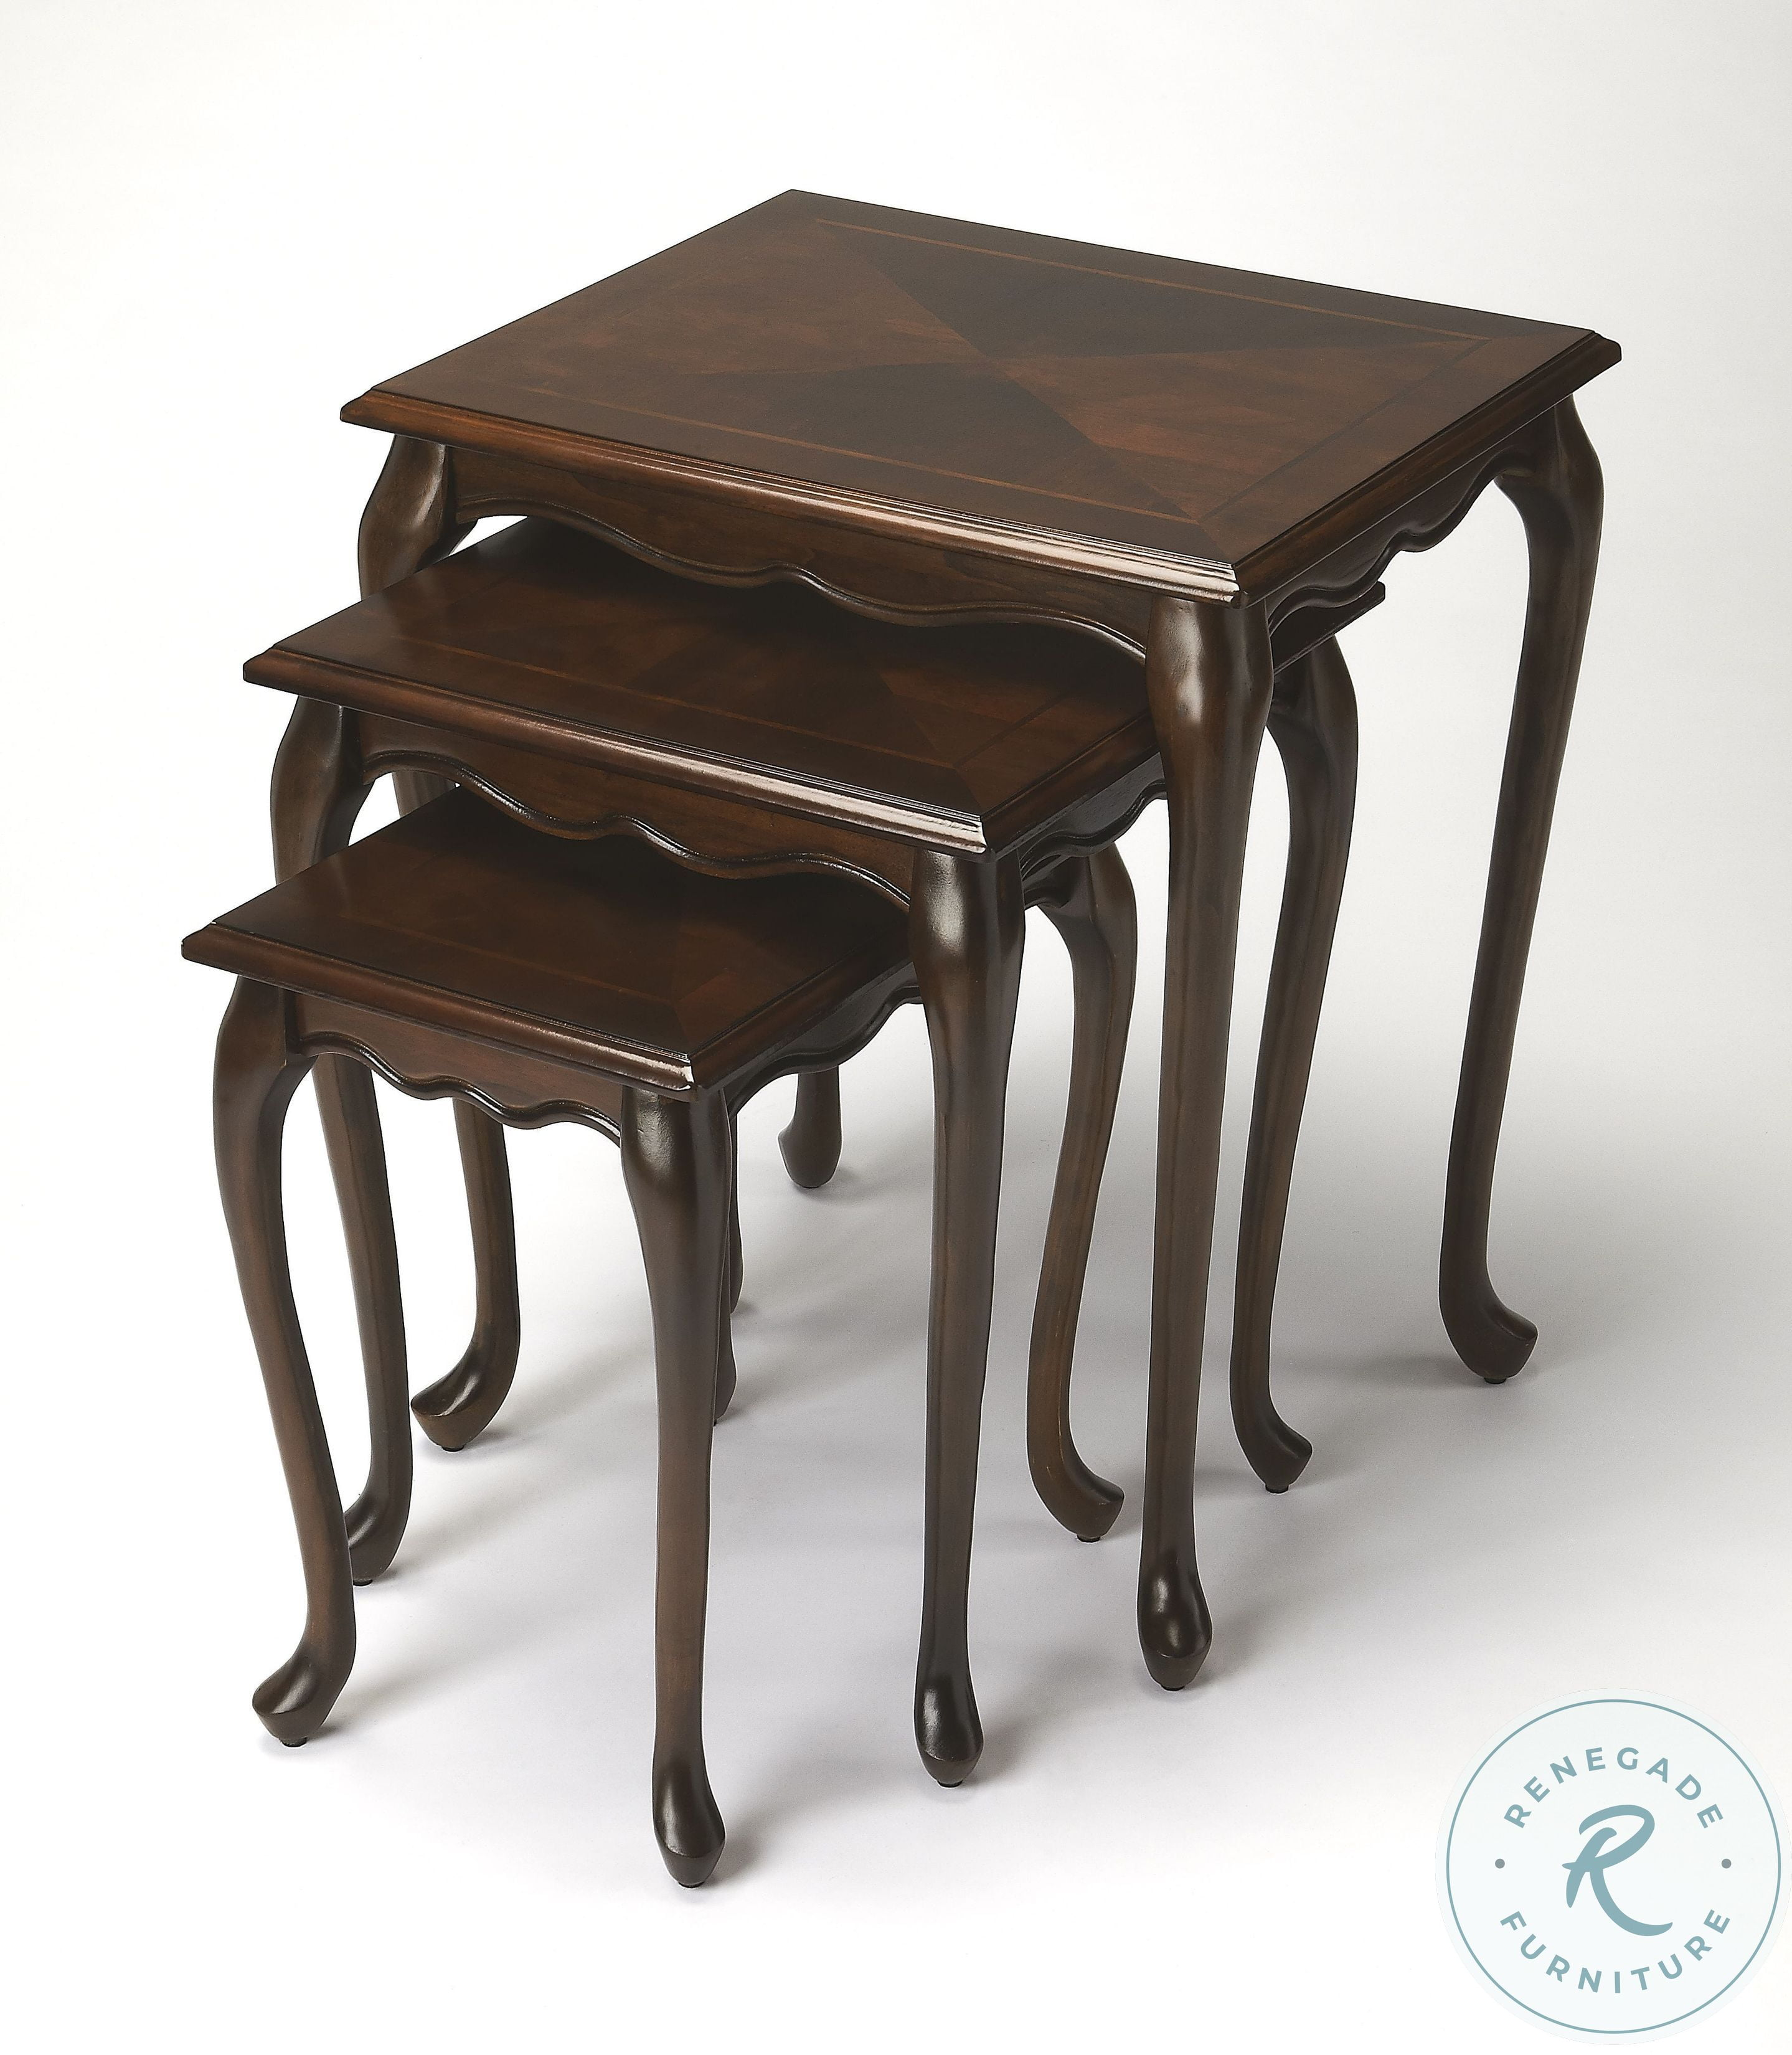 Antique Gold Nesting Tables From Butler 4012226 Coleman Furniture